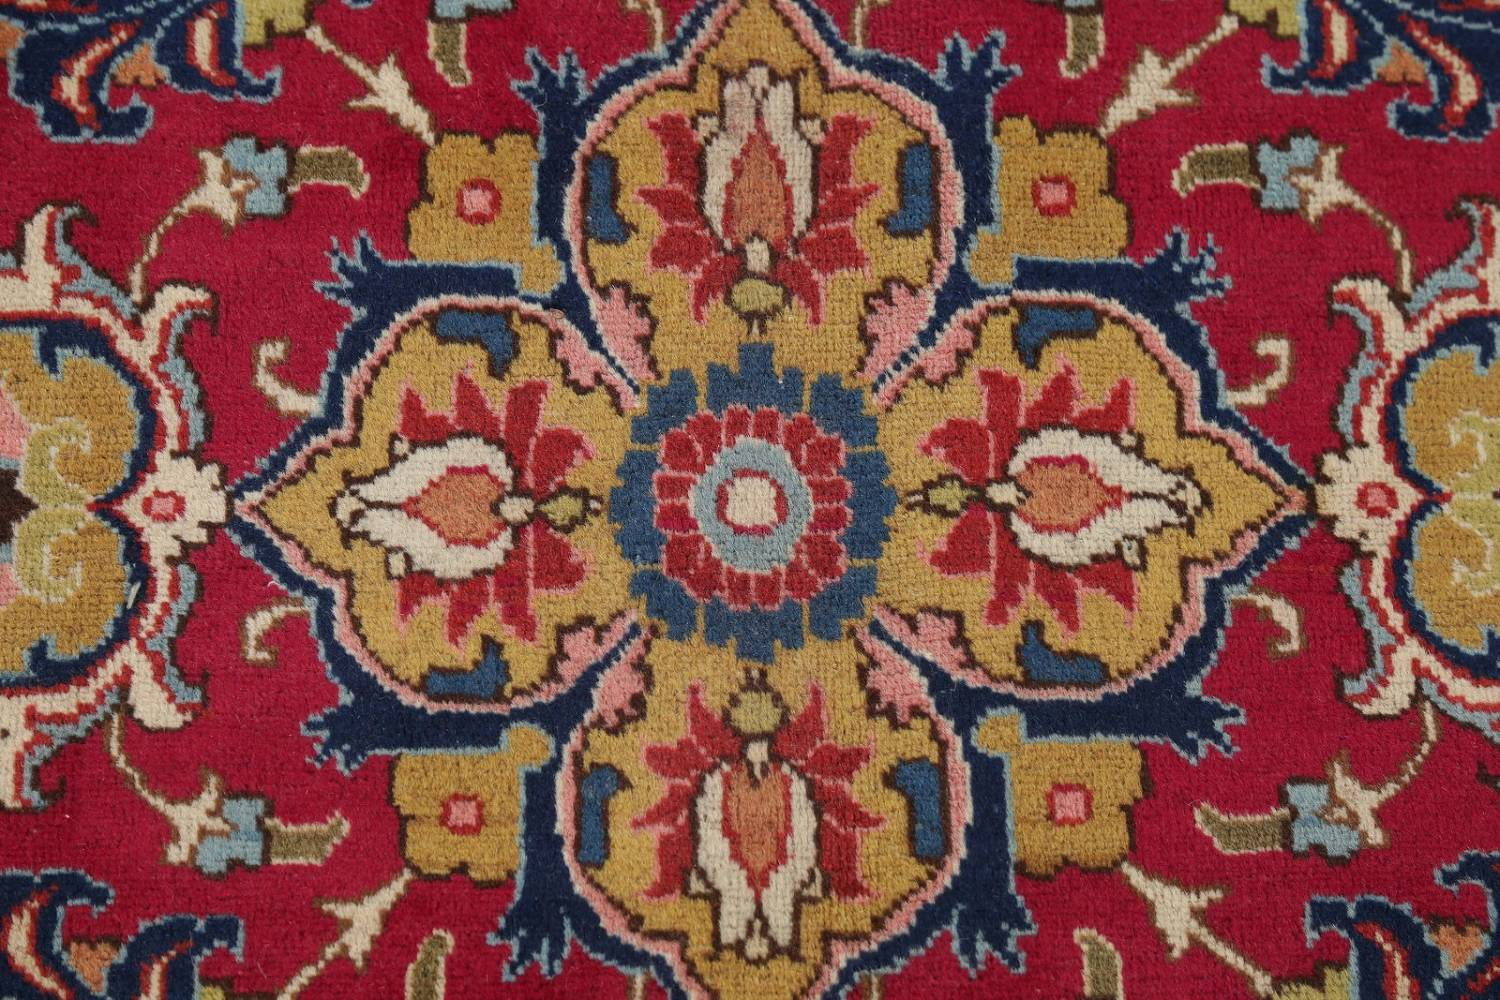 Antique Vegetable Dye Tabriz Persian Hand-Knotted Area Rug Wool 10x13 image 11